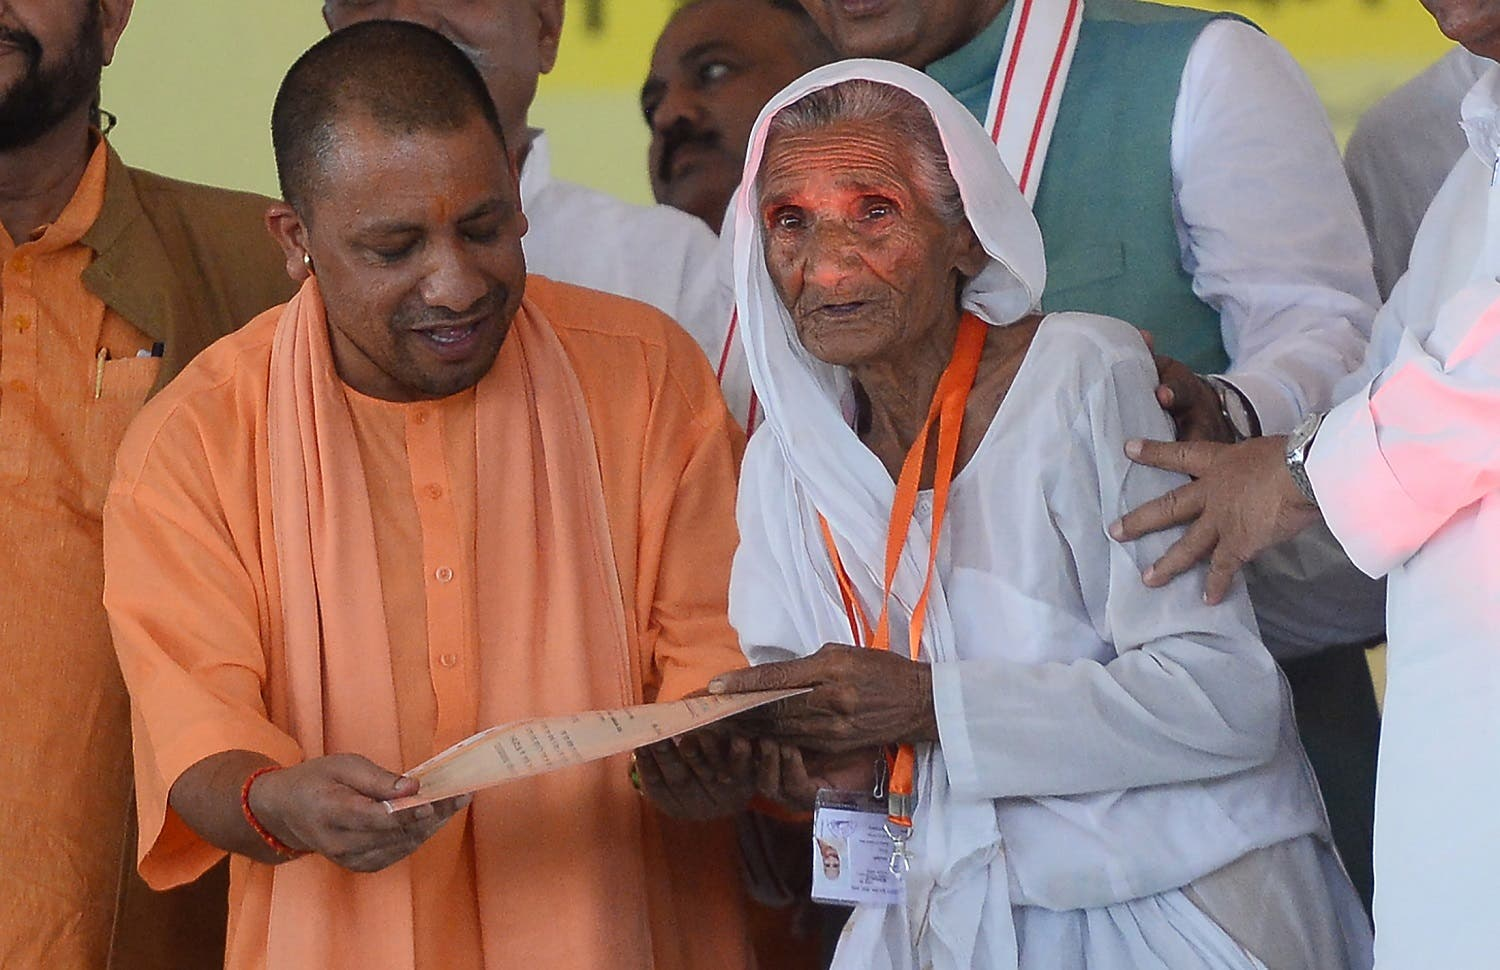 The Chief Minister of the Indian state of Uttar Pradesh Yogi Adityanath (L) gives a certificate to a farmer to clear his loans in Allahabad on September 6, 2017. (AFP)